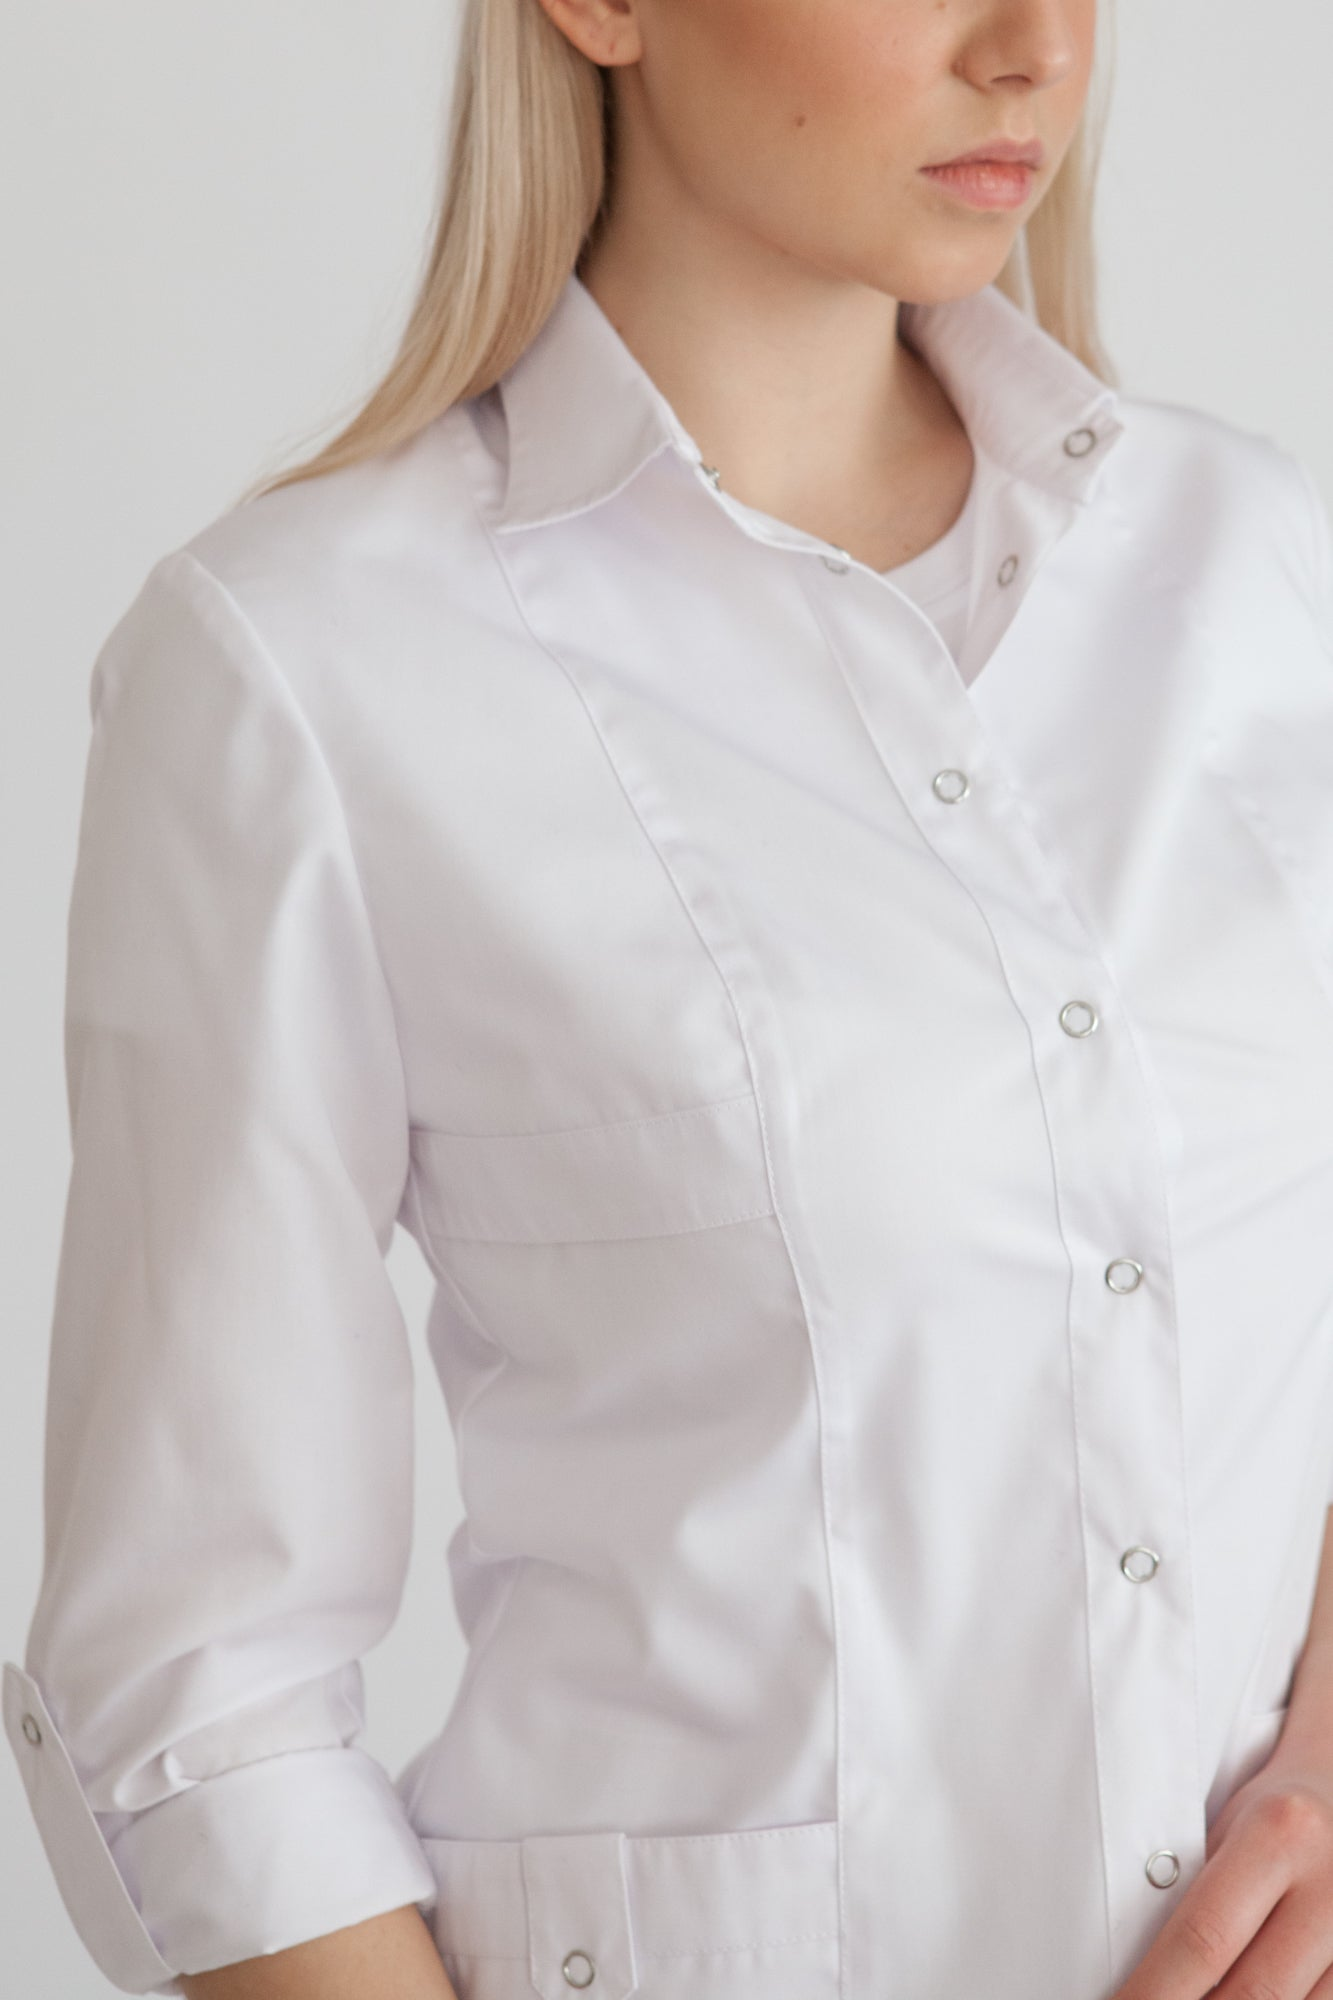 <transcy>Medical Blouse with buttons &quot;Coquette&quot;</transcy>